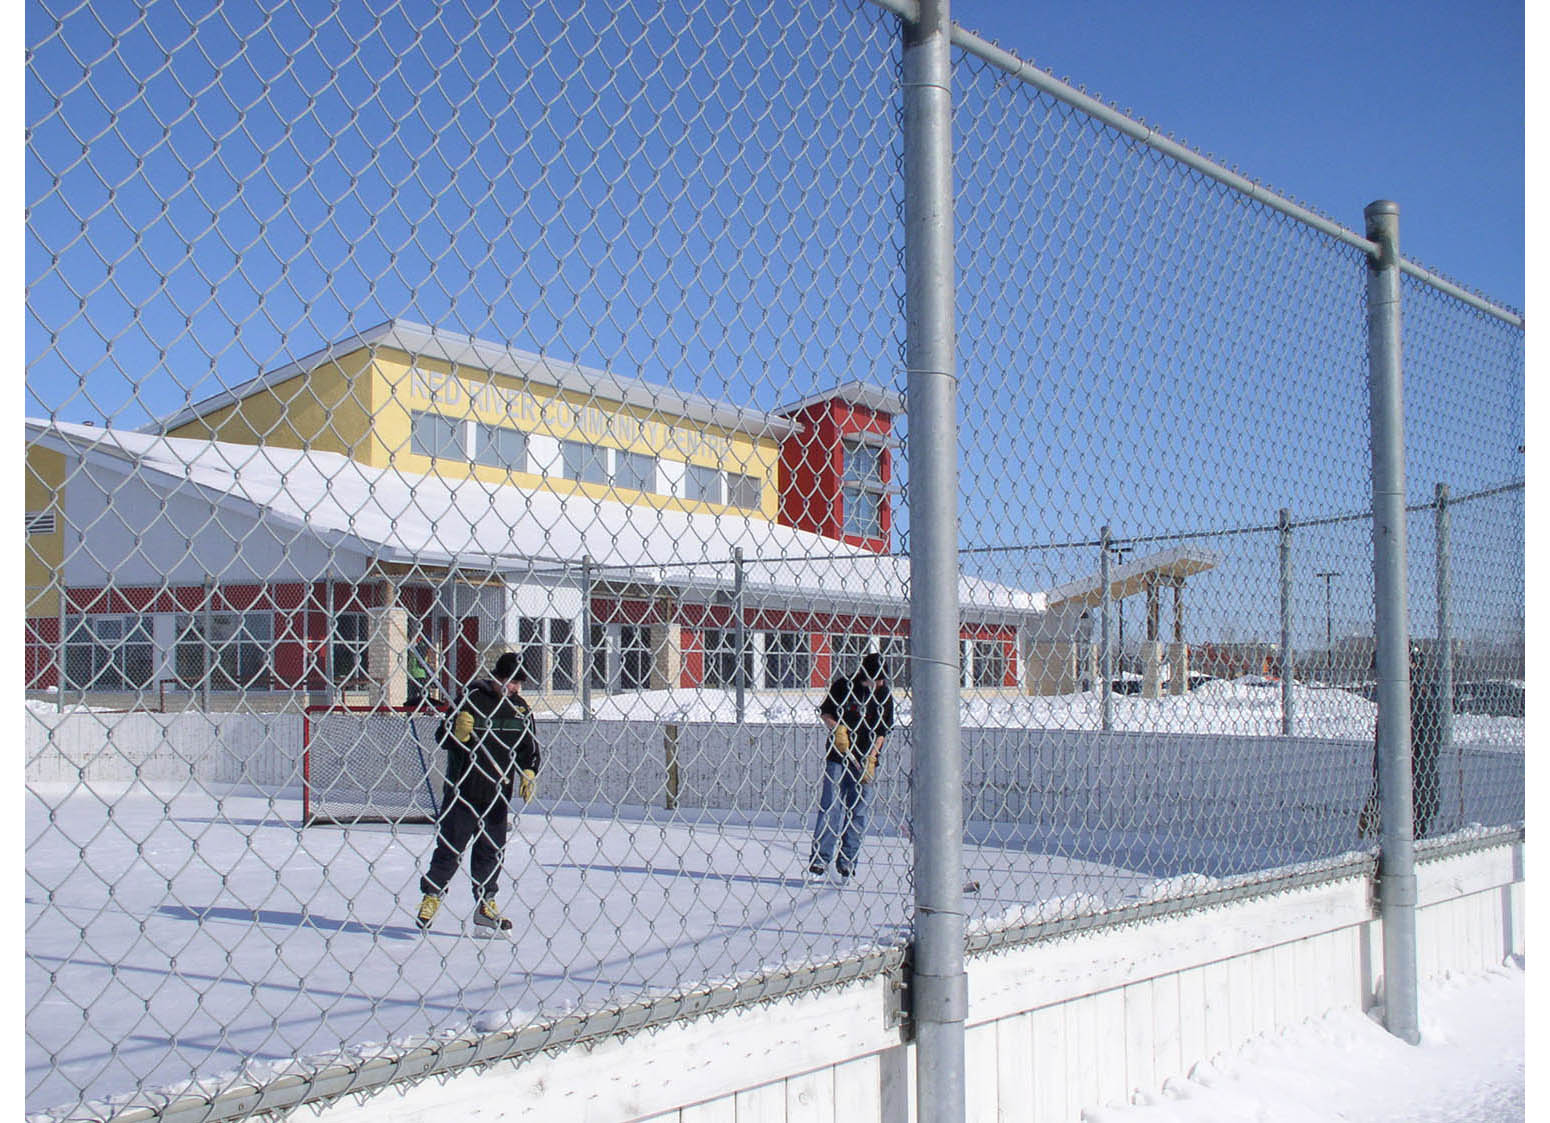 Red River Community Centre, exterior photo of building in winter with kids playing hockey in foreground